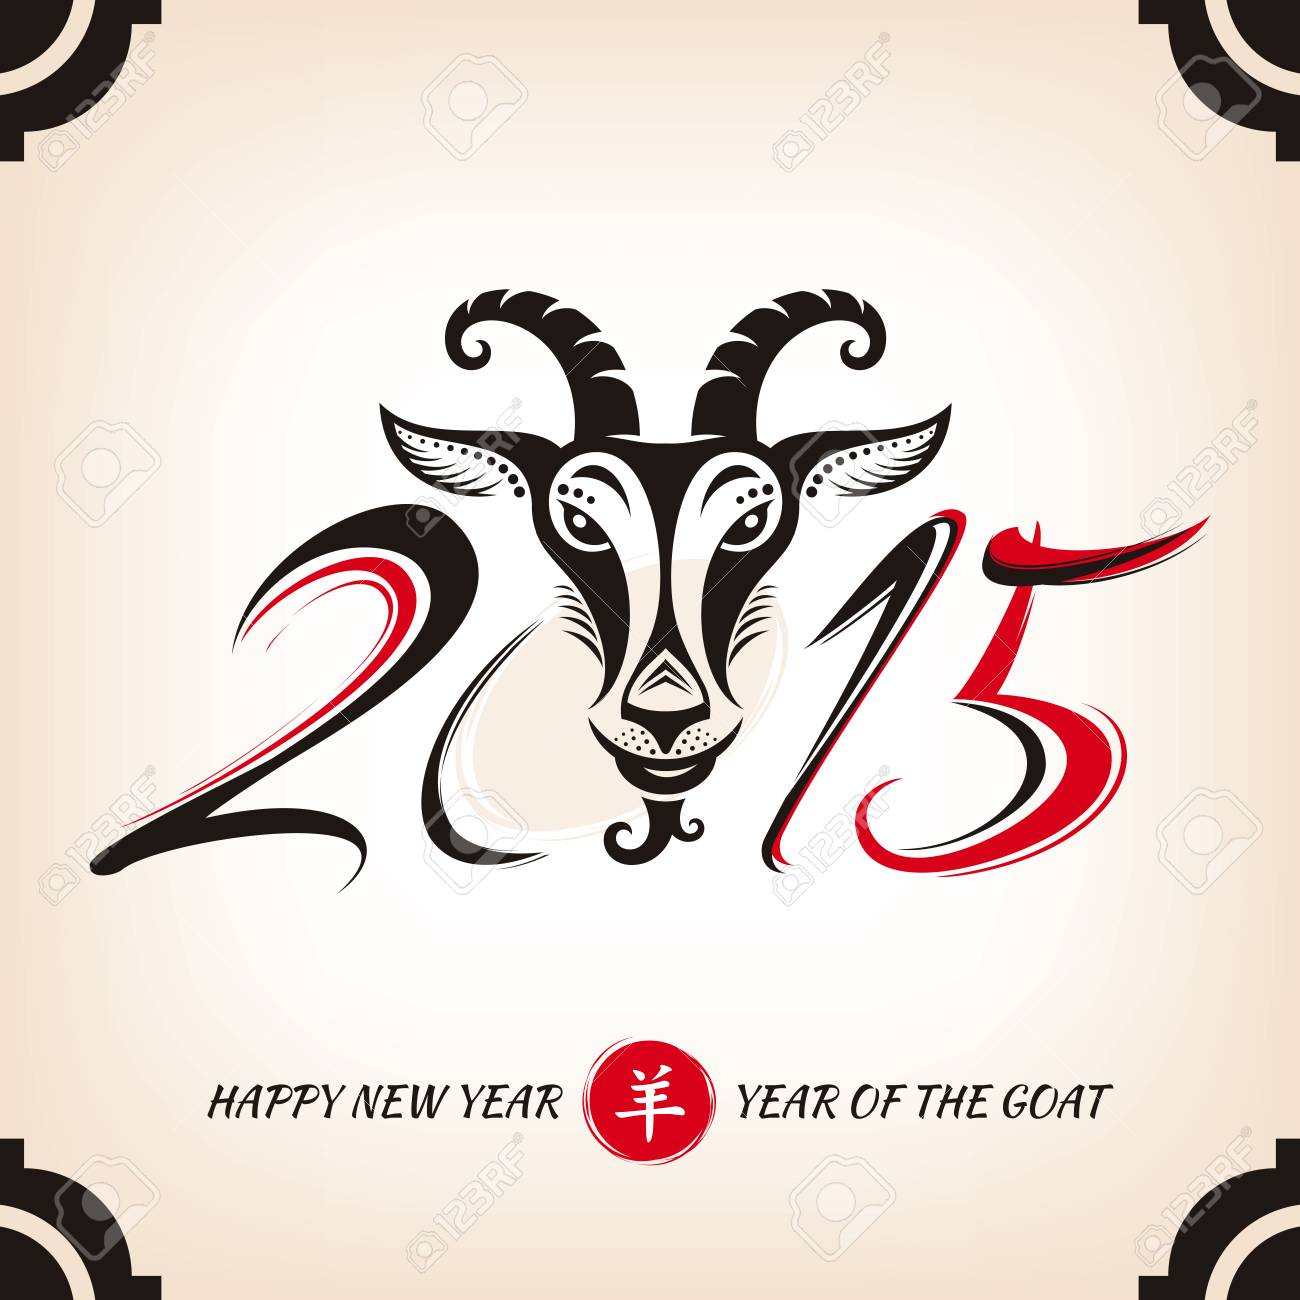 chinese new year greeting card with goat illustration royalty free